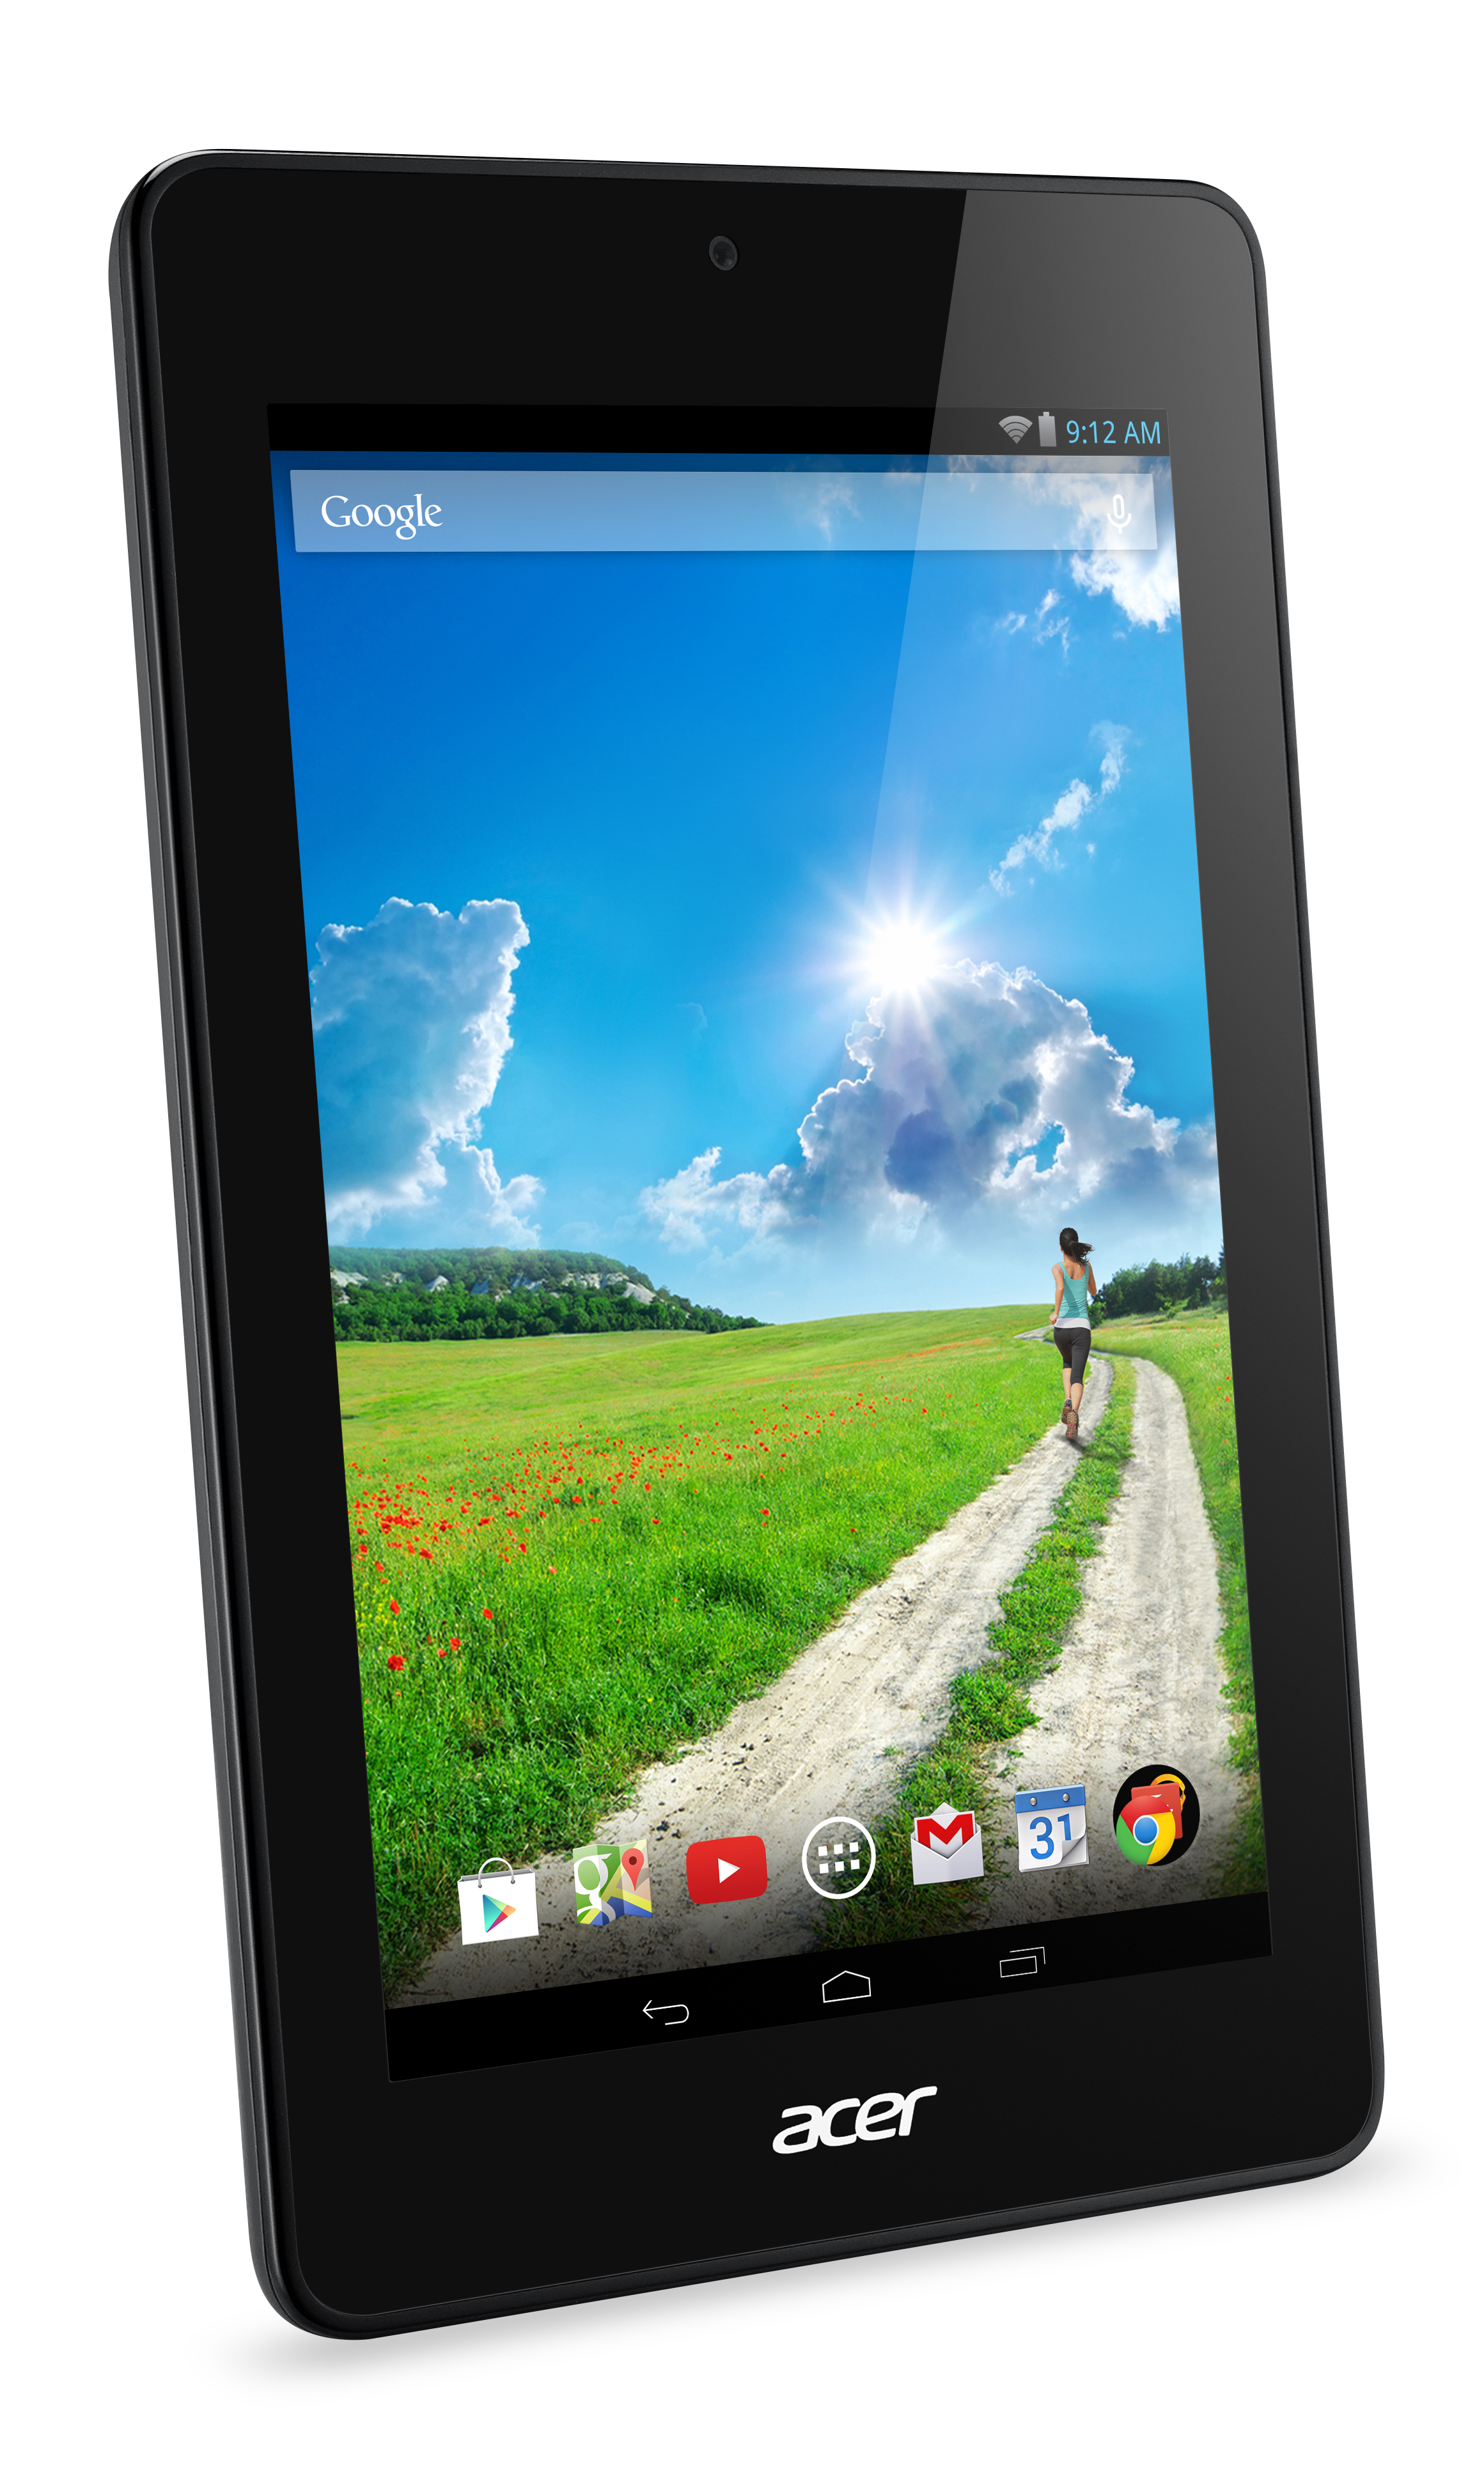 Acer introduces new line of affordable 7-inch Android tablets